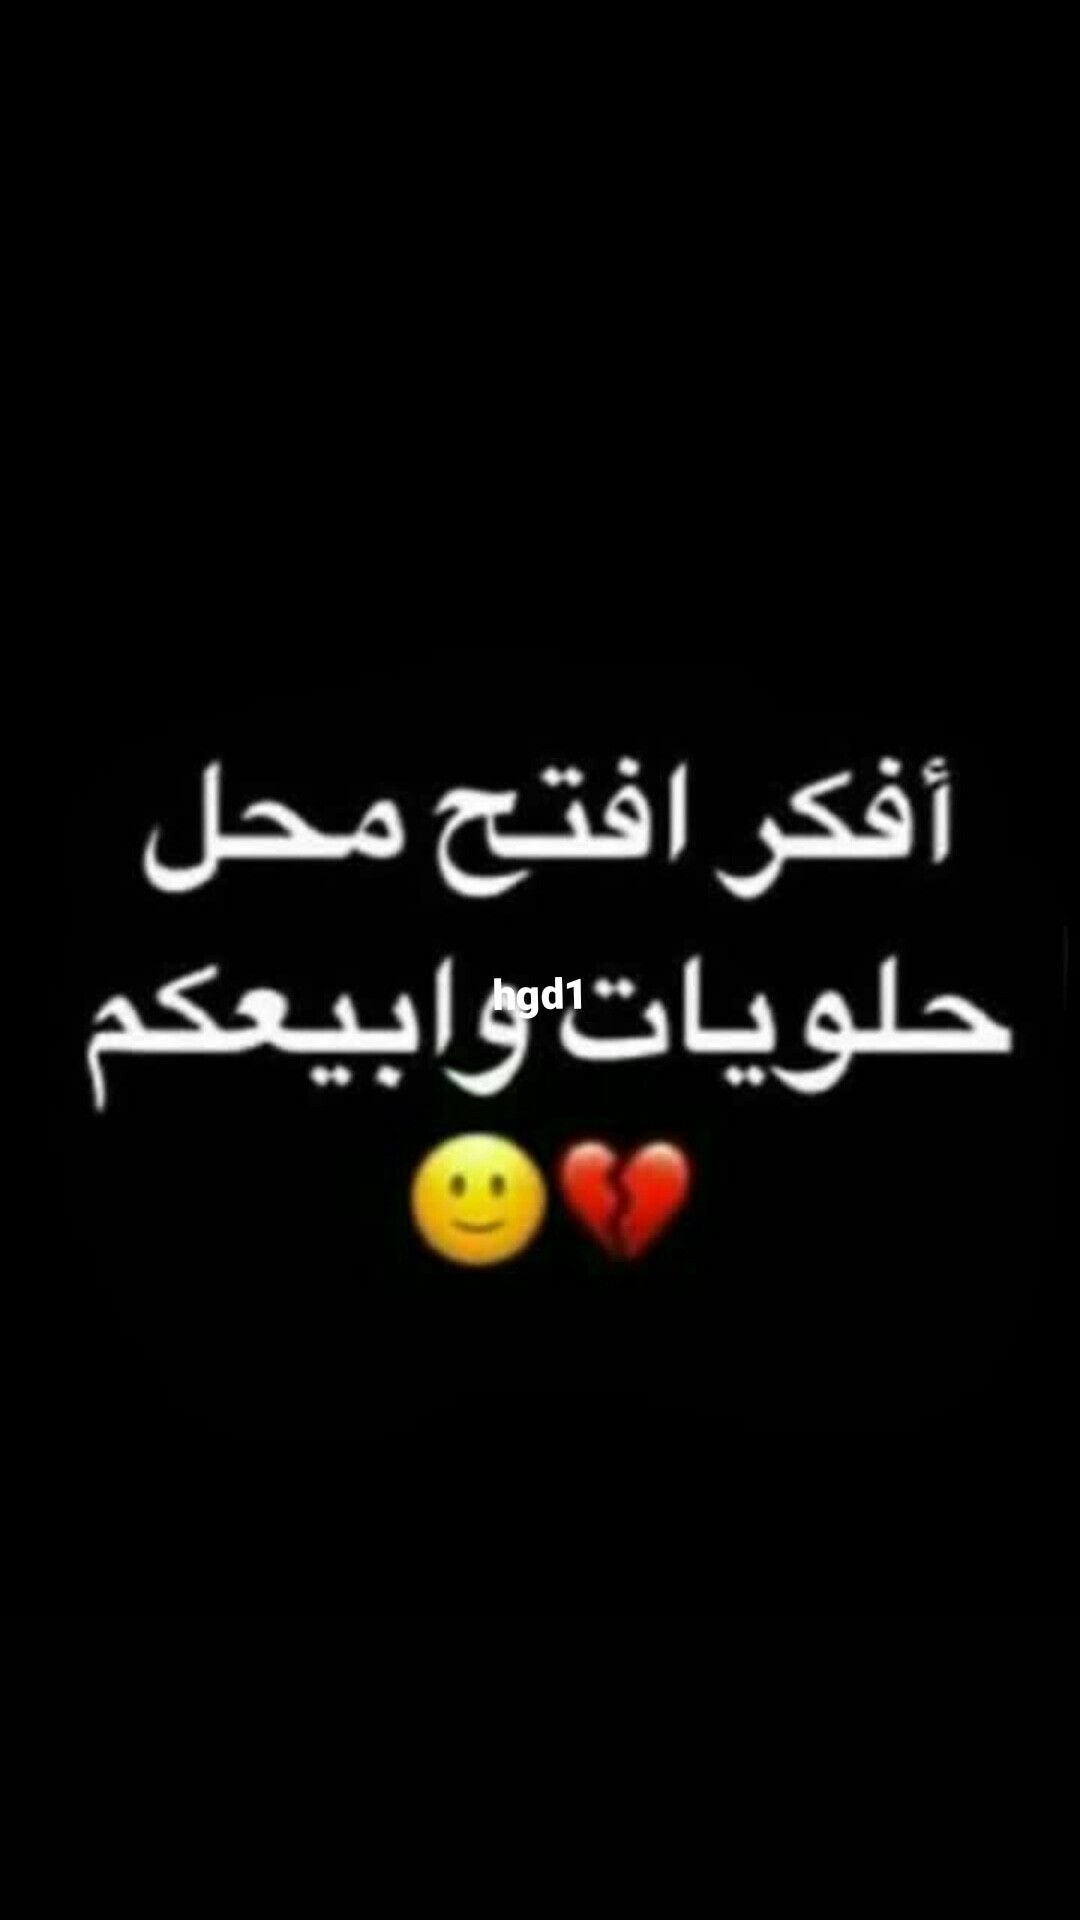 Pin By Goly Goly On ضحك و وناسه Funny Arabic Quotes Funny Quotes Beautiful Arabic Words